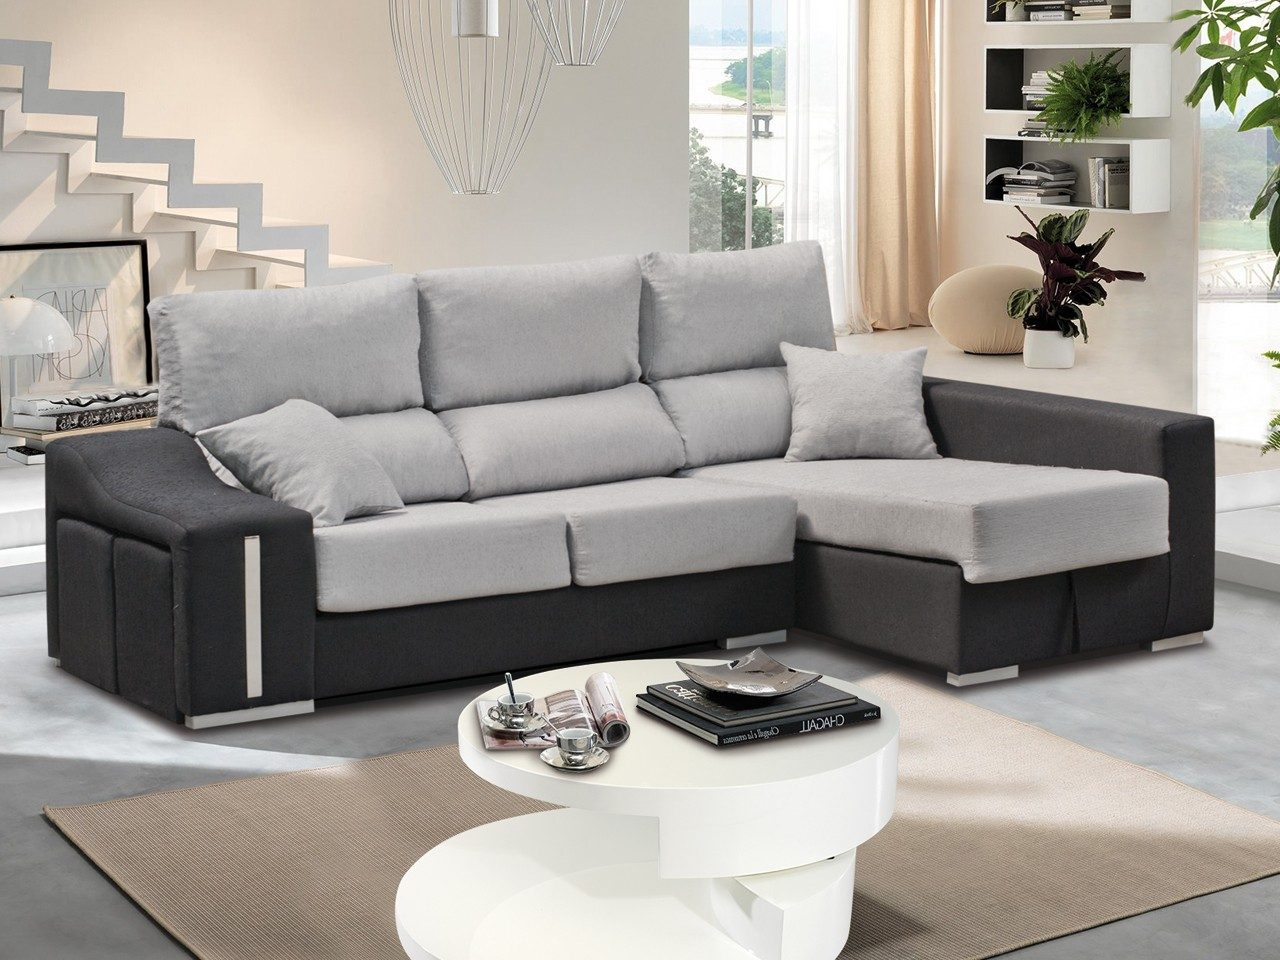 Sof s para la decoraci n de interiores en for Sofas de piel con cheslong